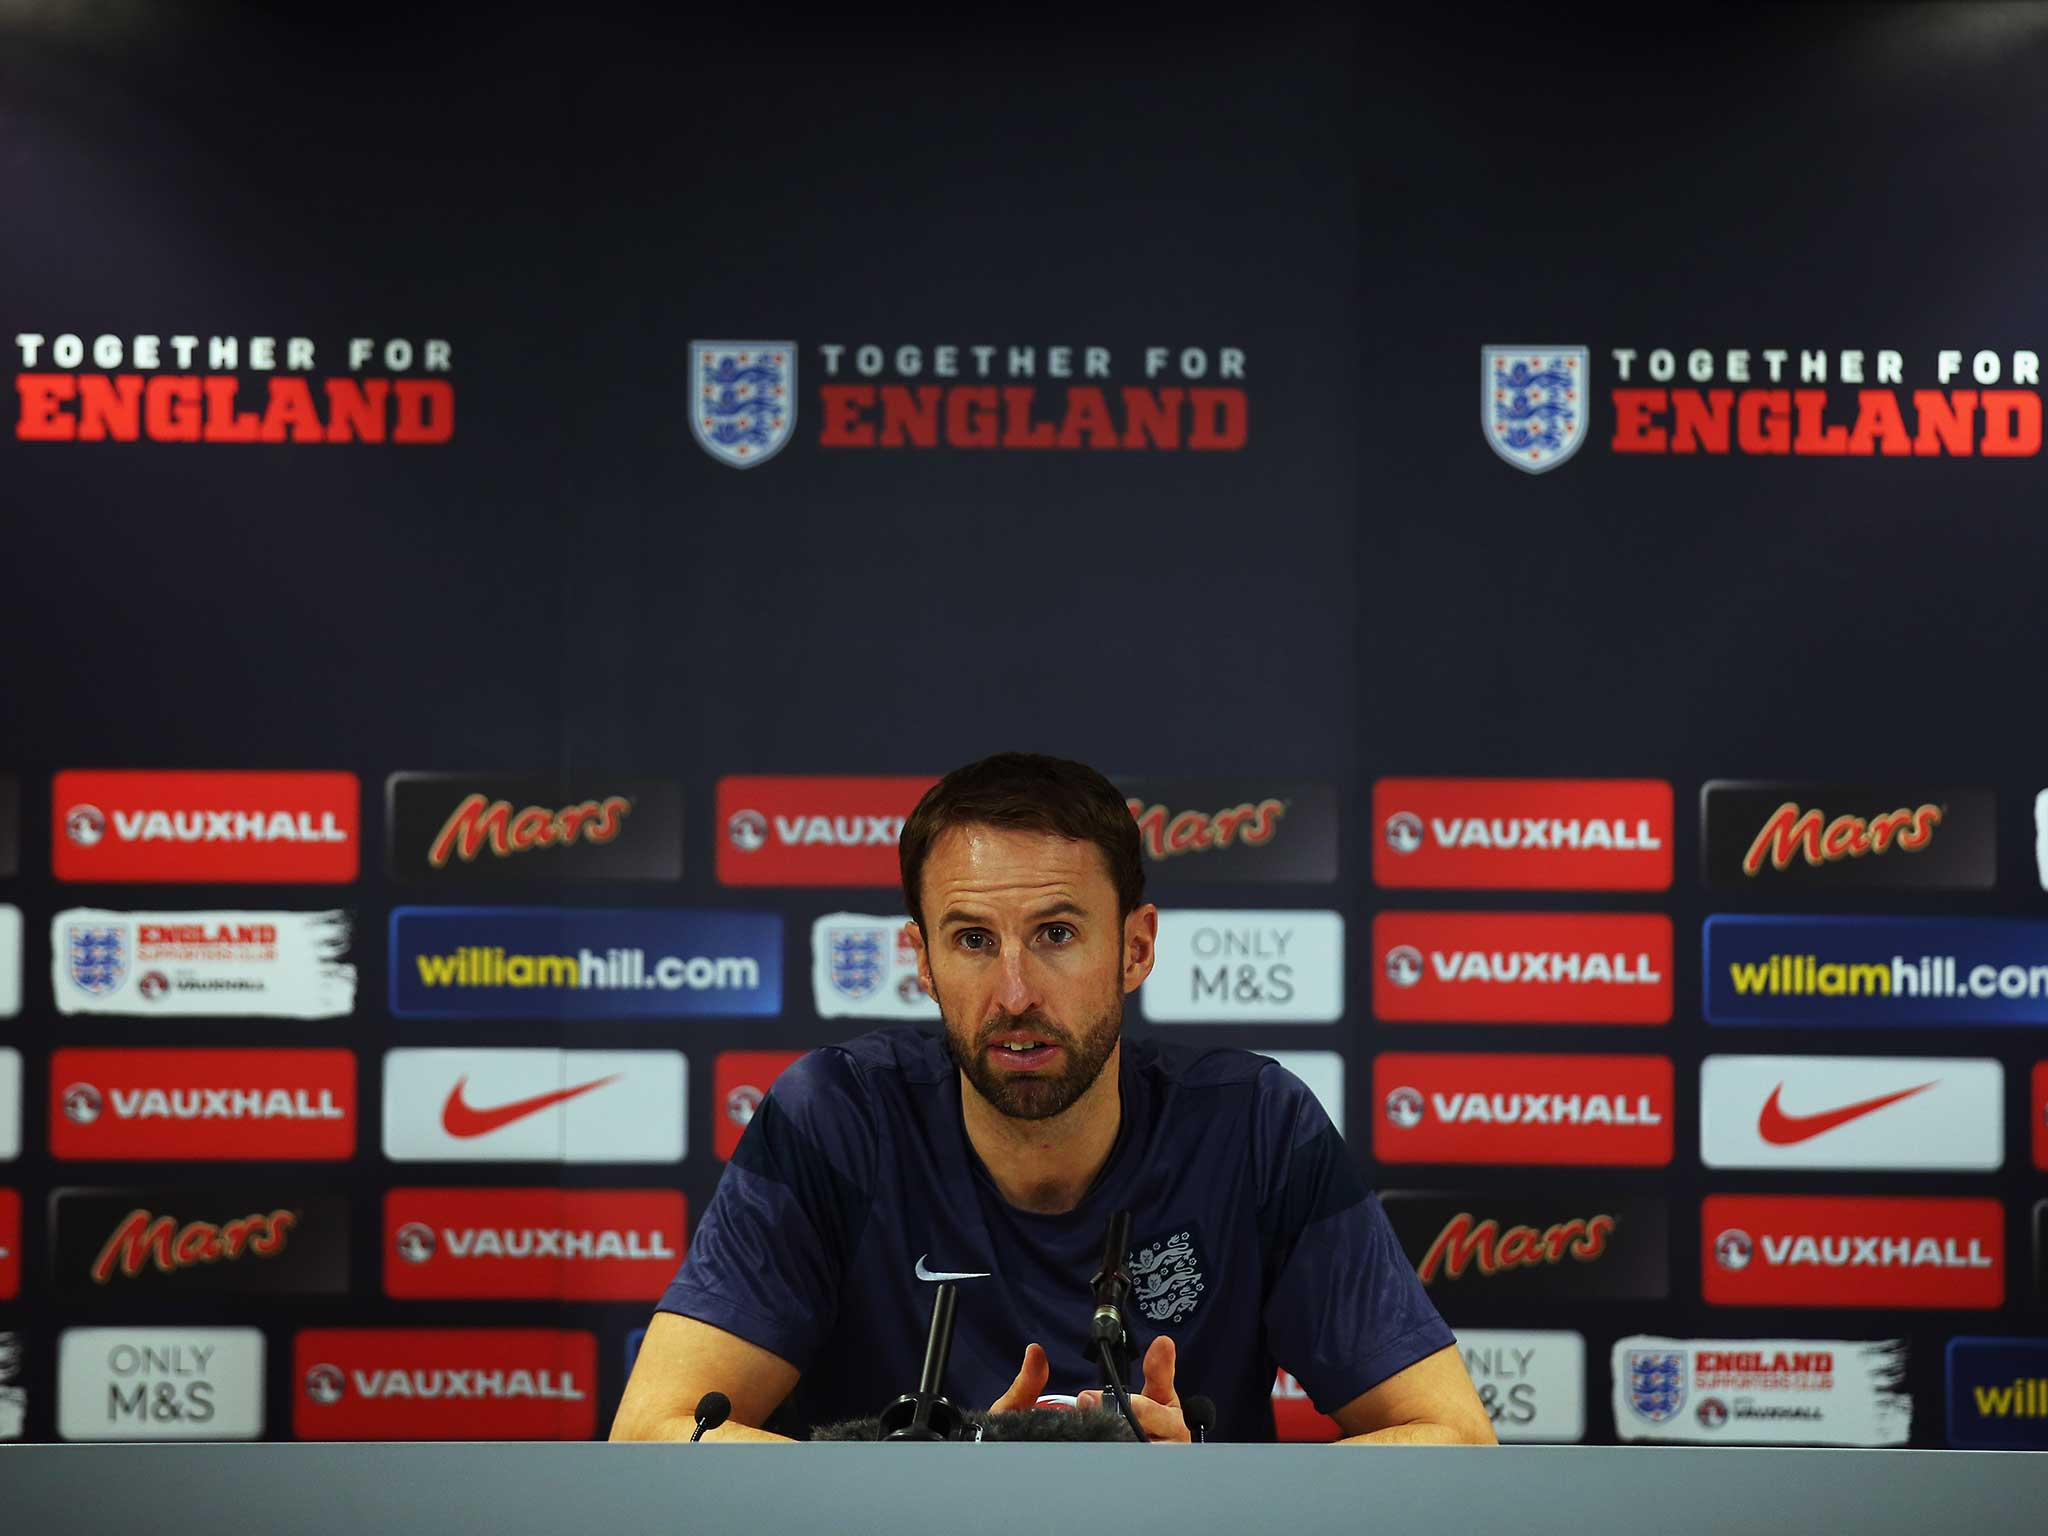 southgate senior singles Chelsea's senior players have kept reuben loftus-cheek in his place at the club, according to england manager gareth southgate.